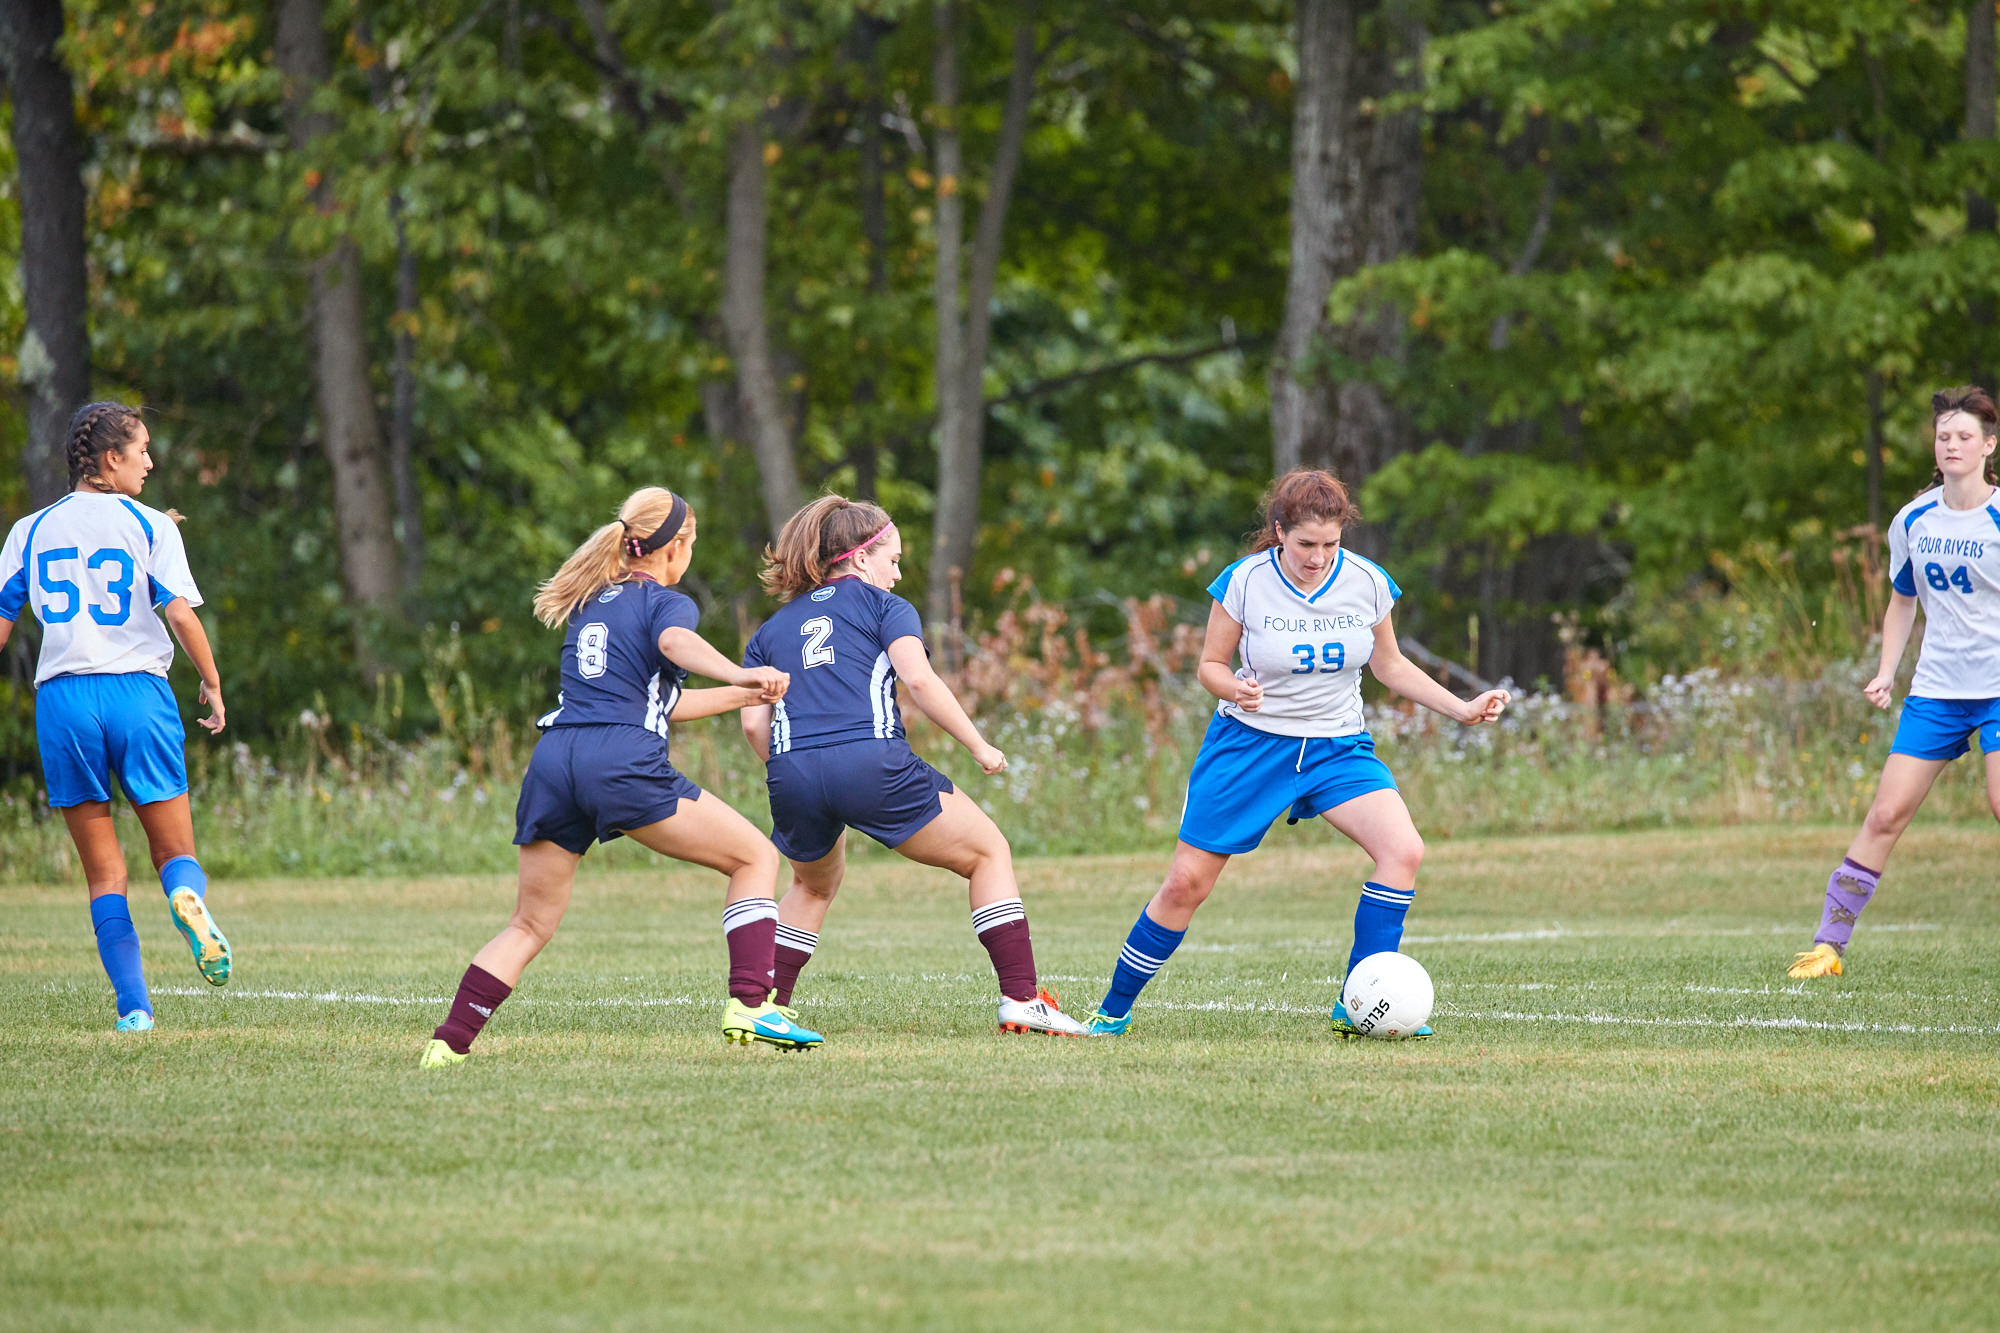 Girls Varsity Soccer vs. Four Rivers Charter Public School - September 23, 2016 - 41863- 000159.jpg